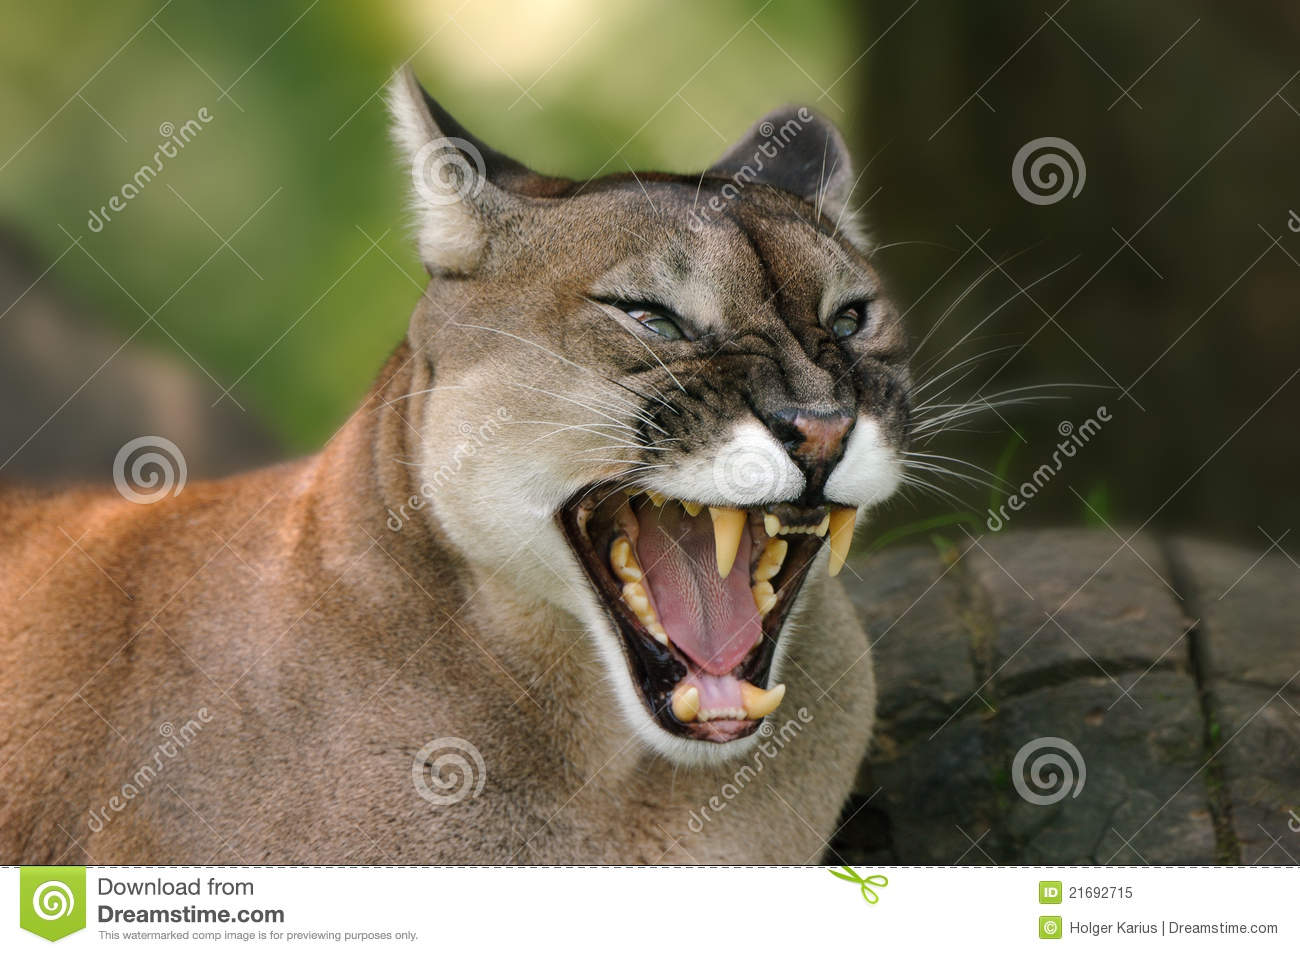 Cougar (Puma Concolor) Royalty Free Stock Photo - Image: 21692715